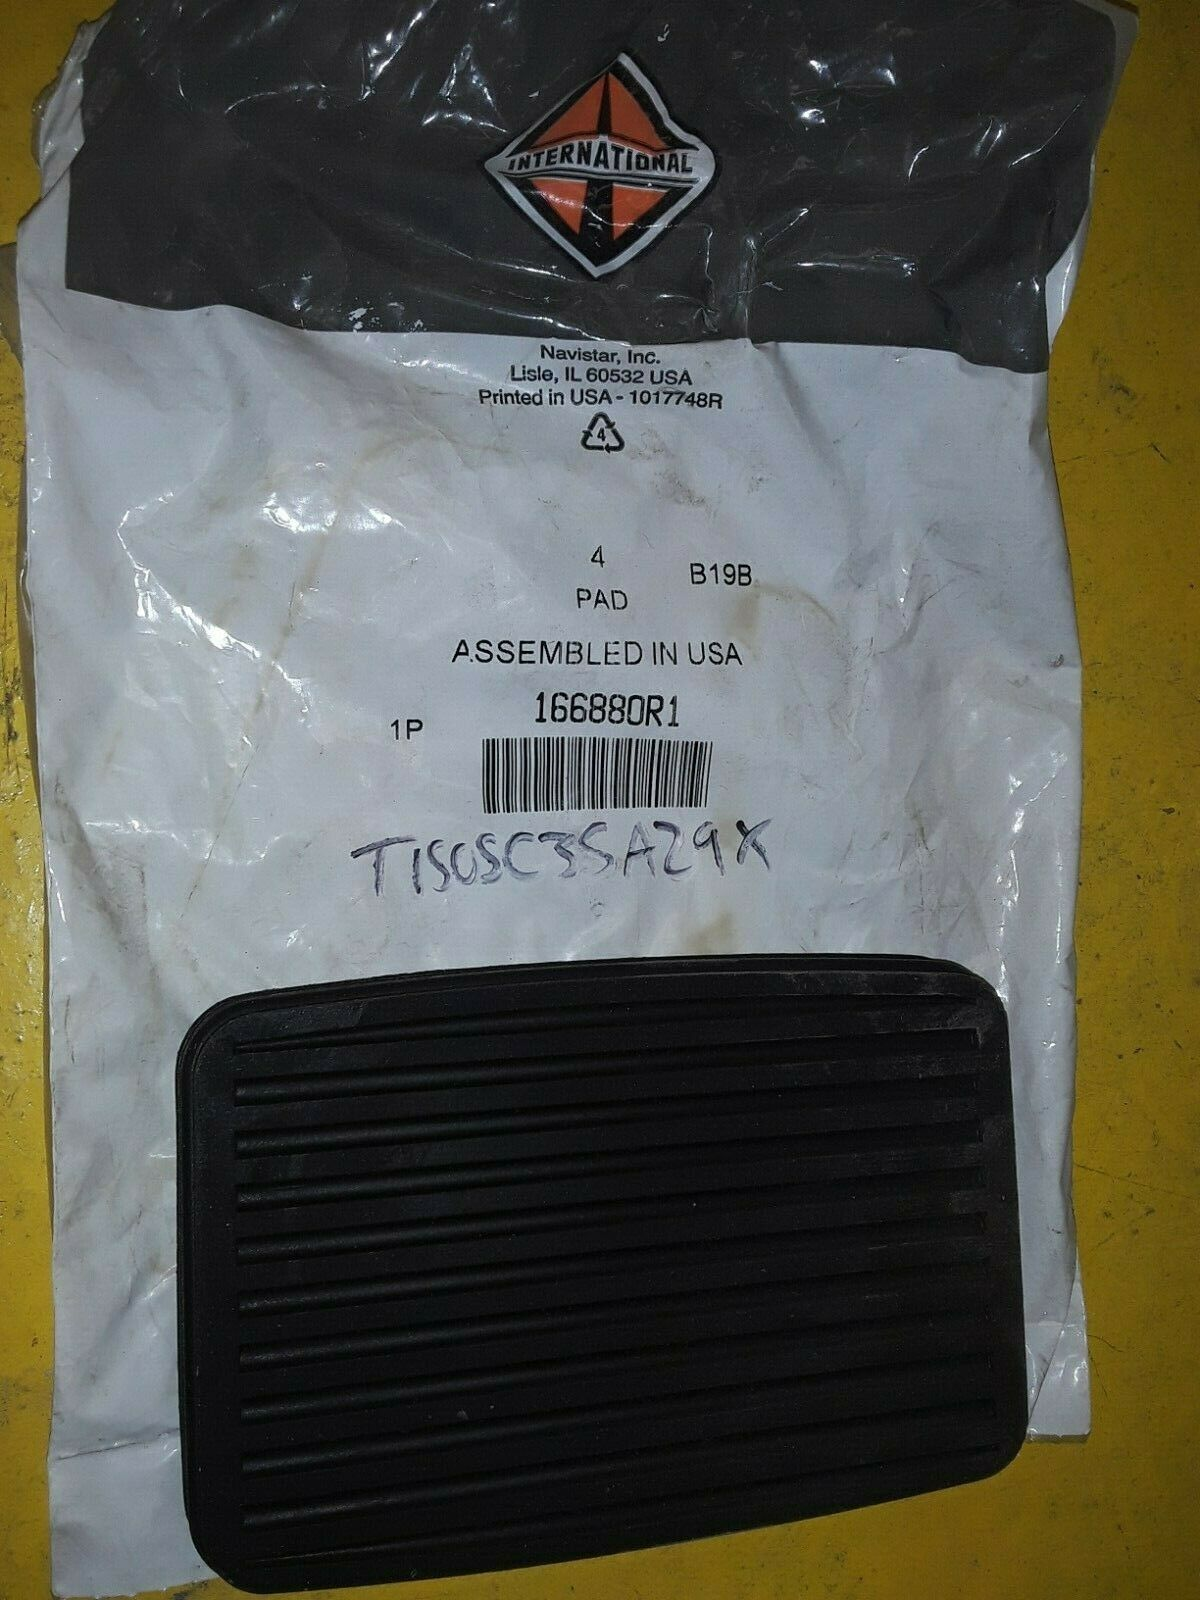 OEM INTERNATIONAL BRAKE PEDAL PAD 166880R1